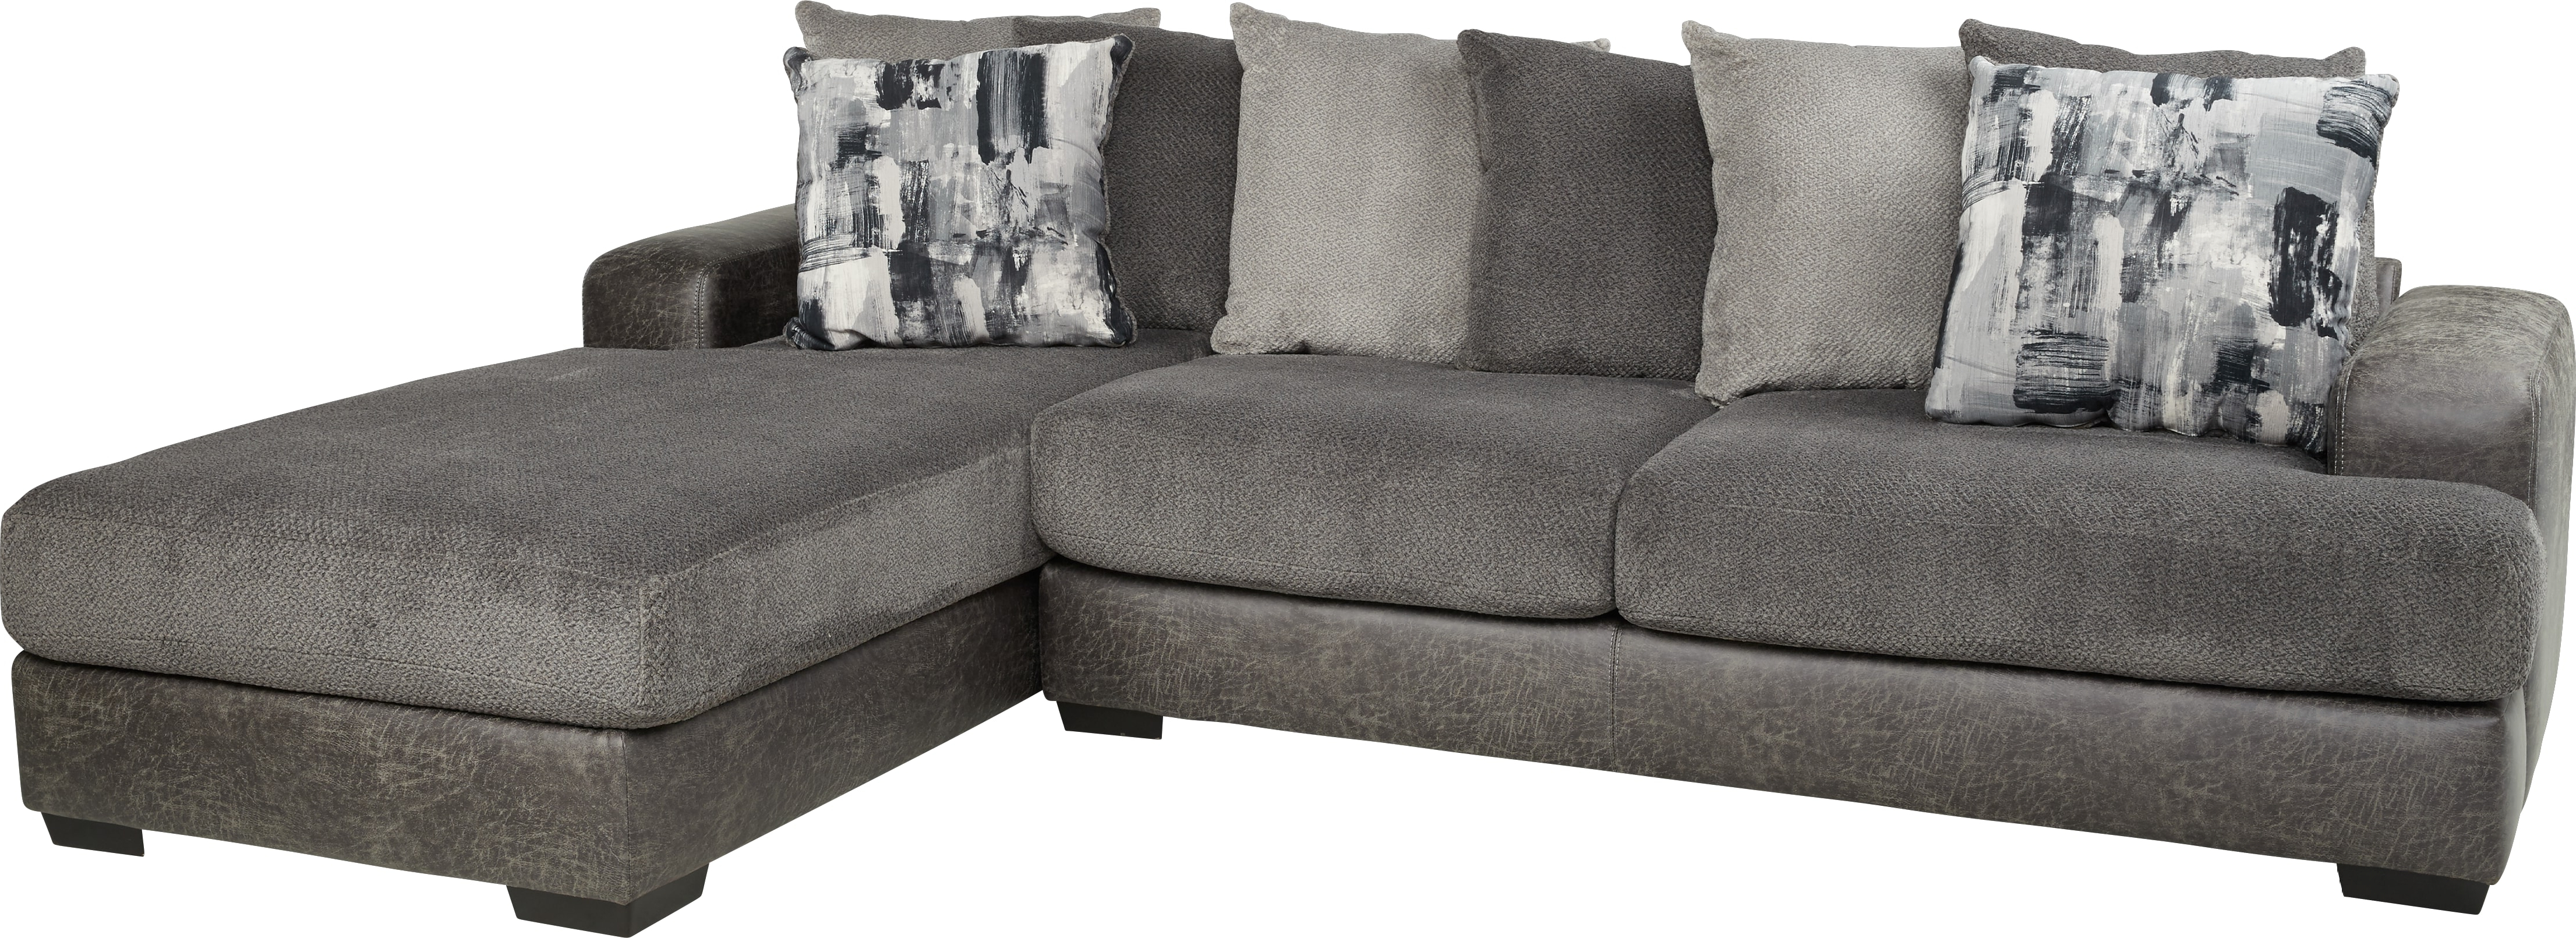 Mcdade Graphite Sofa Chairs Pertaining To Well Liked Foster Square Graphite 2 Pc Sectional – Living Room Sets (gray) (View 5 of 20)